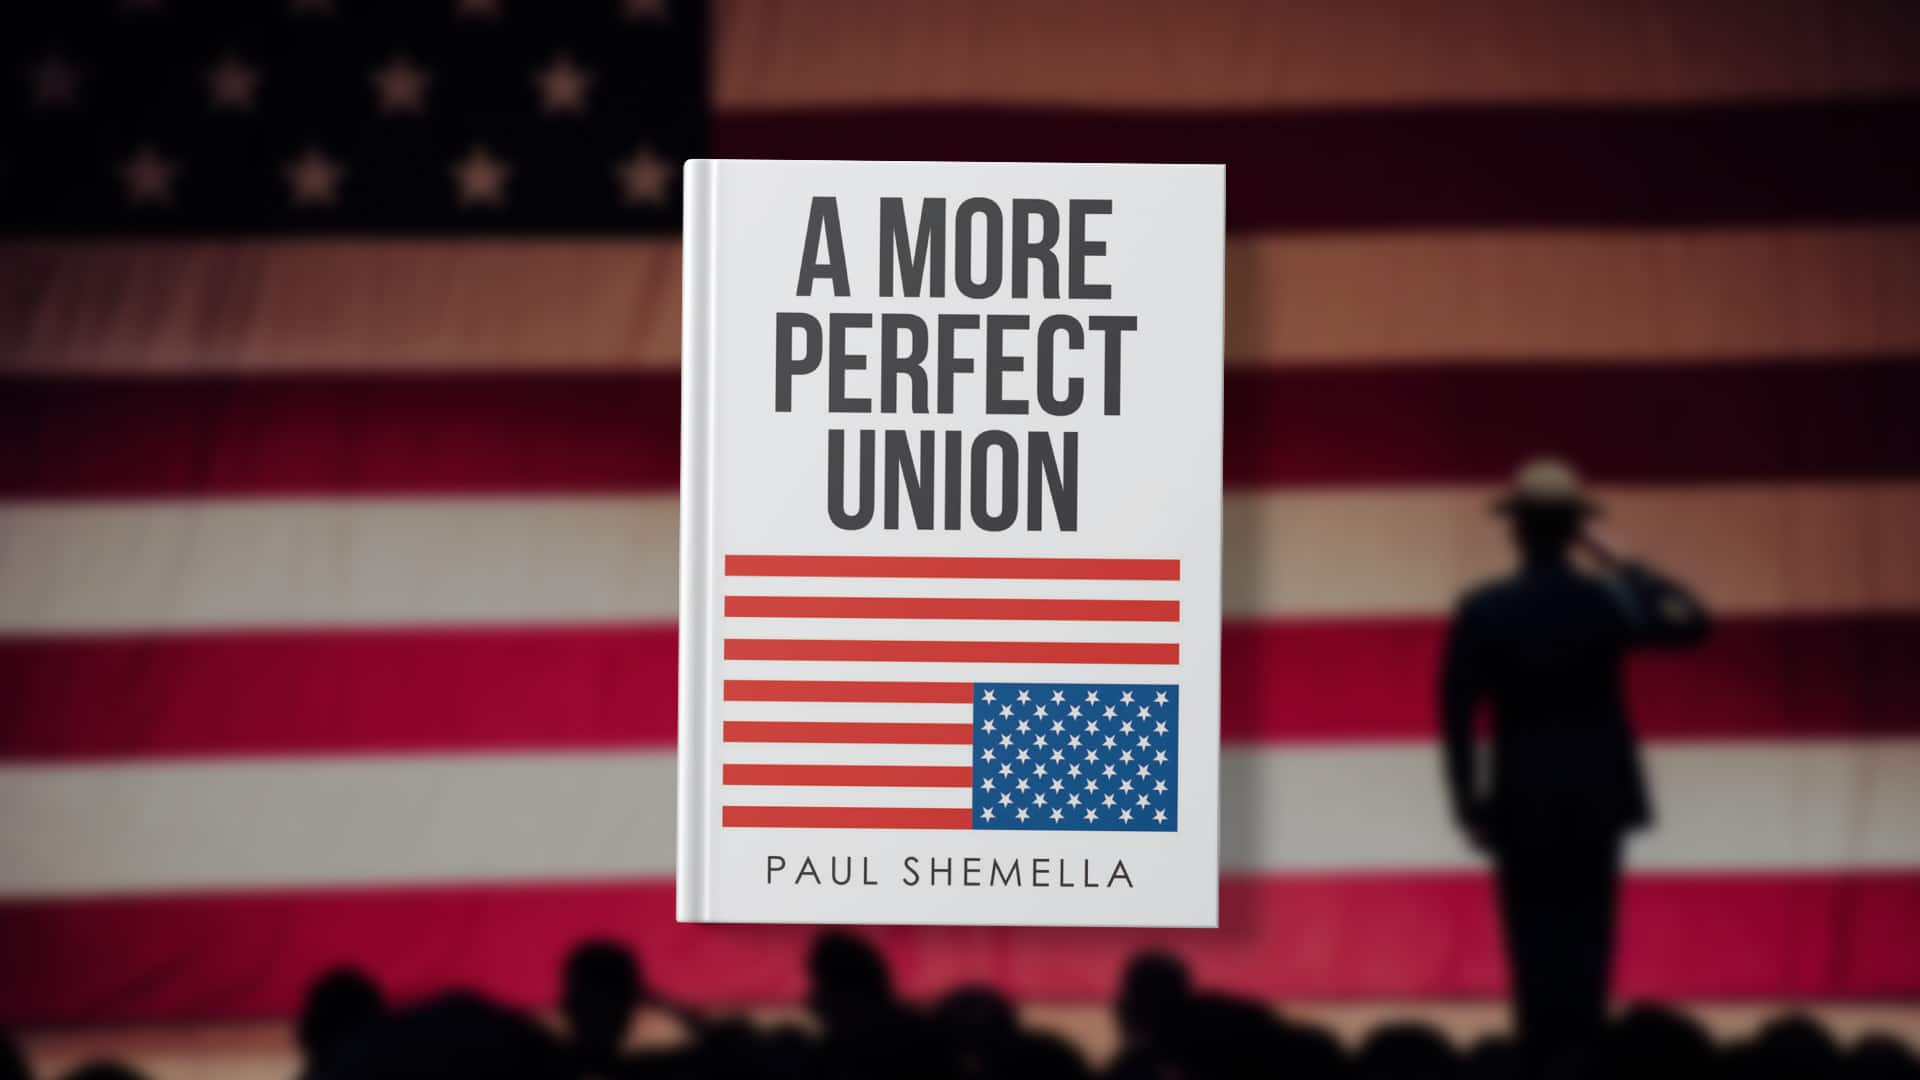 A More Perfect Union by Paul Shemella (1) banner